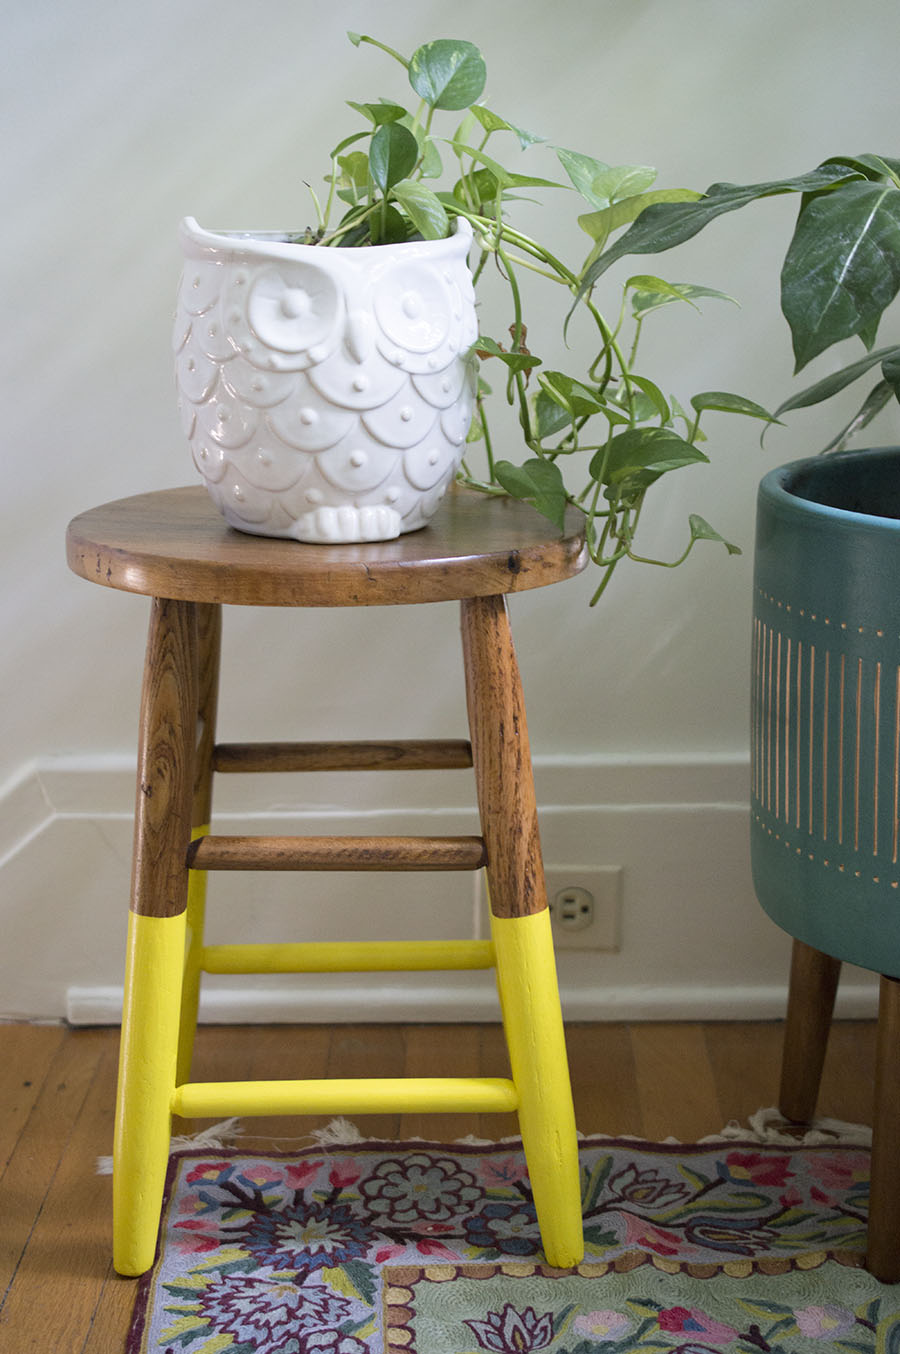 Amazing Paint Dipped Plant Stool A Happy Stitch Gmtry Best Dining Table And Chair Ideas Images Gmtryco